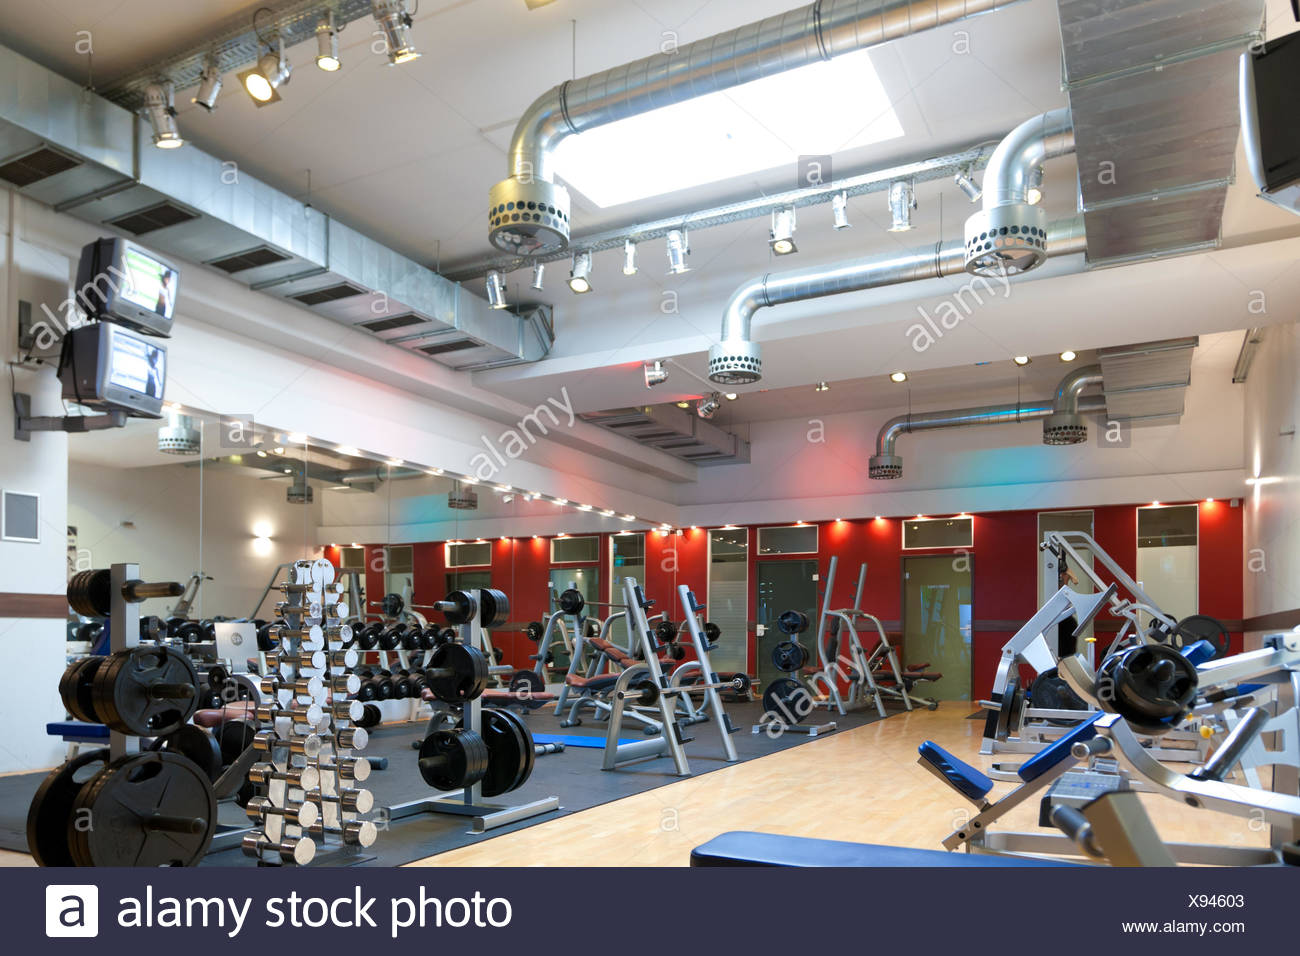 fitness center - equipment and weights - Stock Image